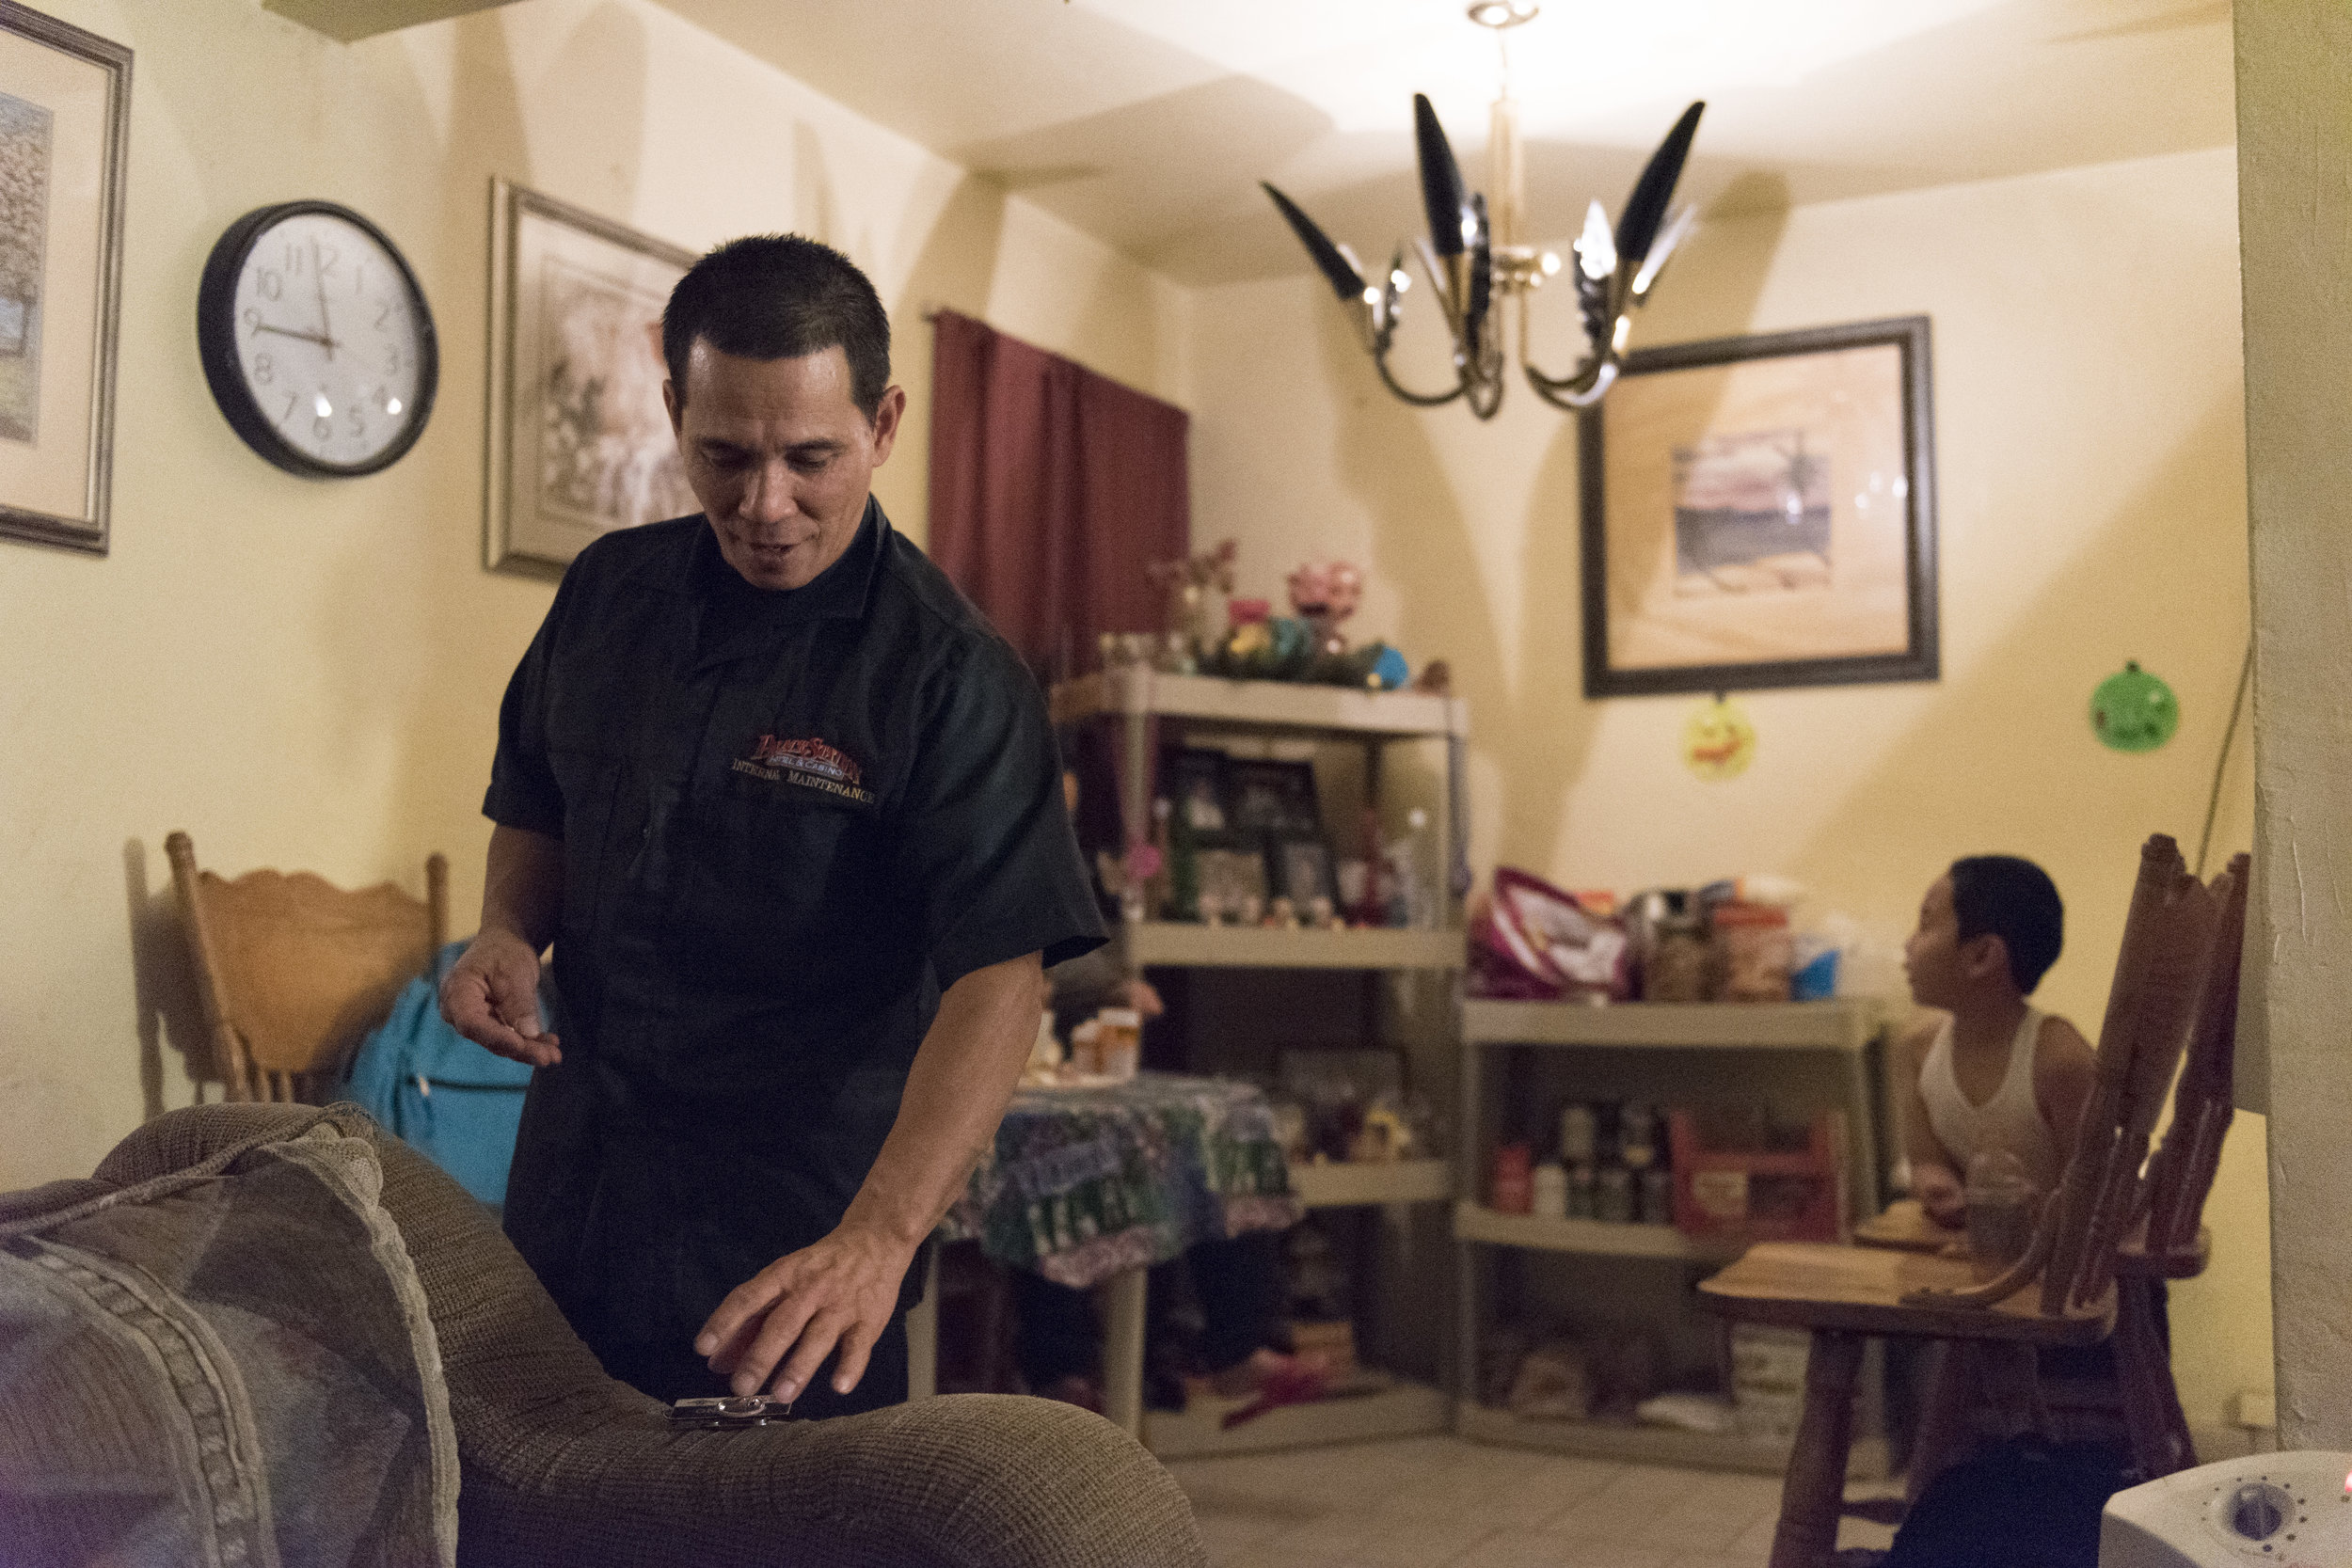 At his home, Casiano Corpus Jr. prepares to put the name tag on his uniform before leaving to work a graveyard shift at Palace Station hotel-casino, a non-union hotel.